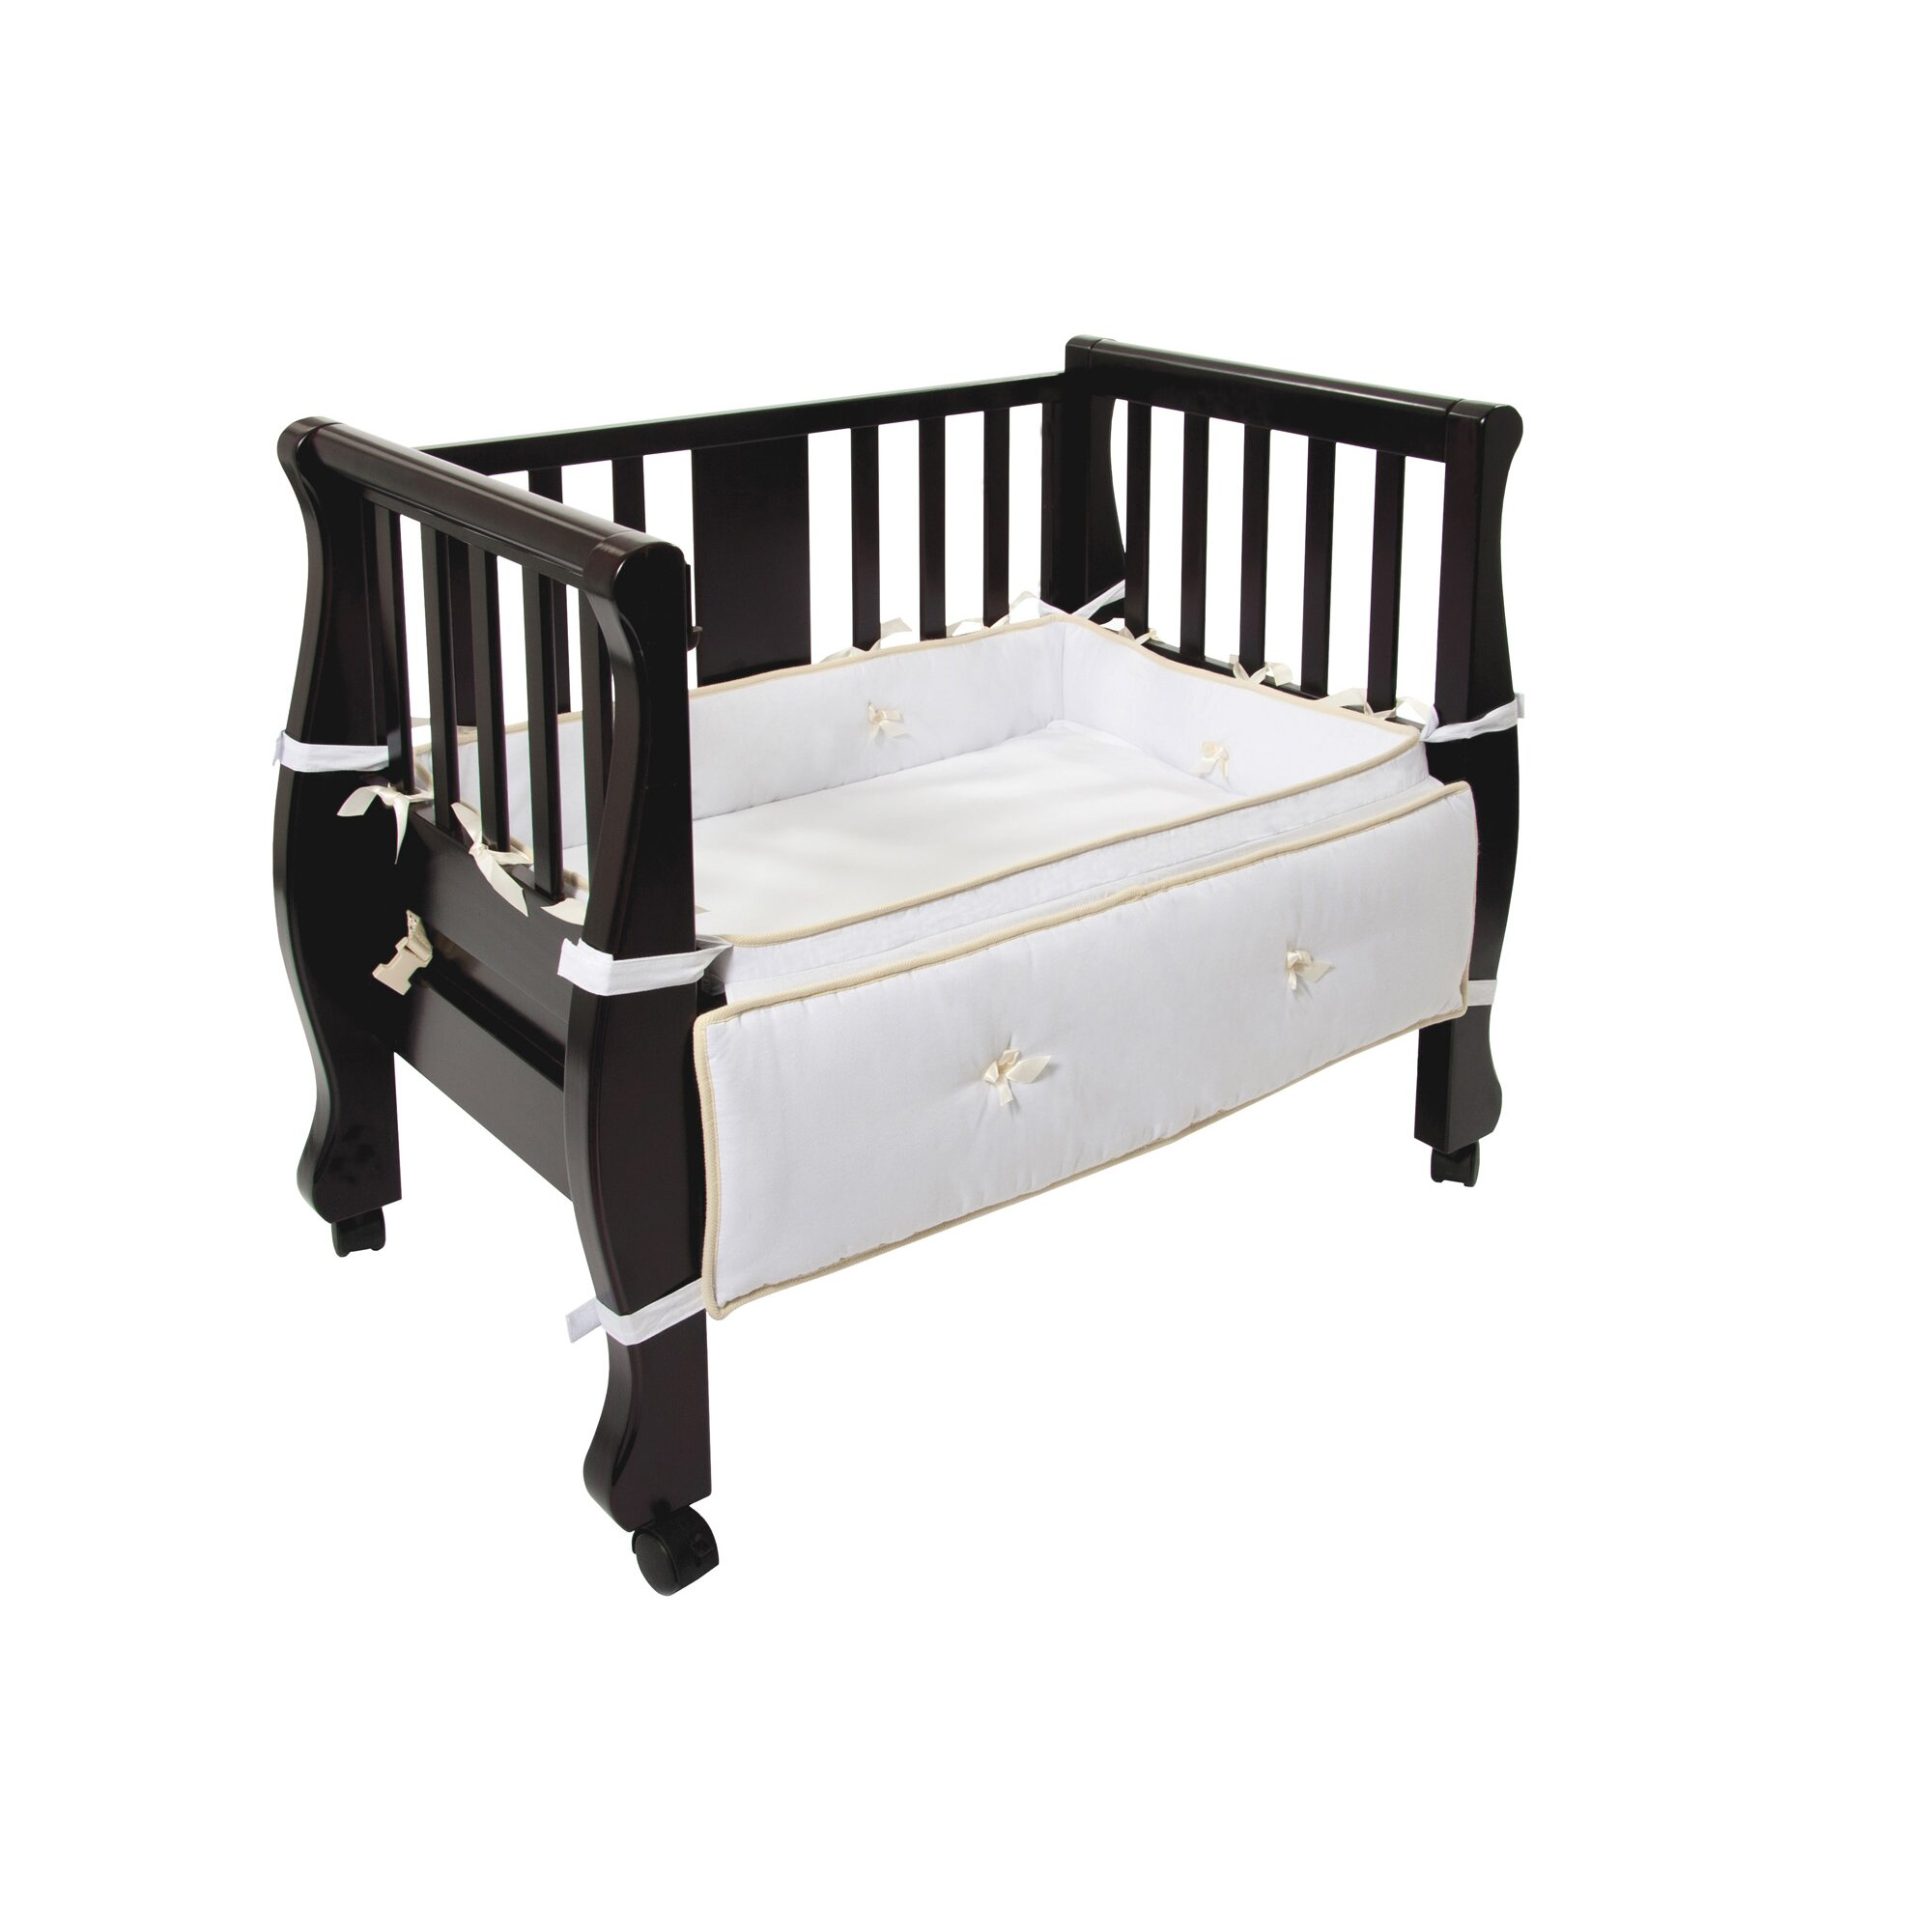 Arms Reach Sleigh Bed Co Sleeper Bassinet amp Reviews Wayfair : Arms Reach Sleigh Bed Co Sleeper Bassinet from www.wayfair.com size 2000 x 2000 jpeg 233kB